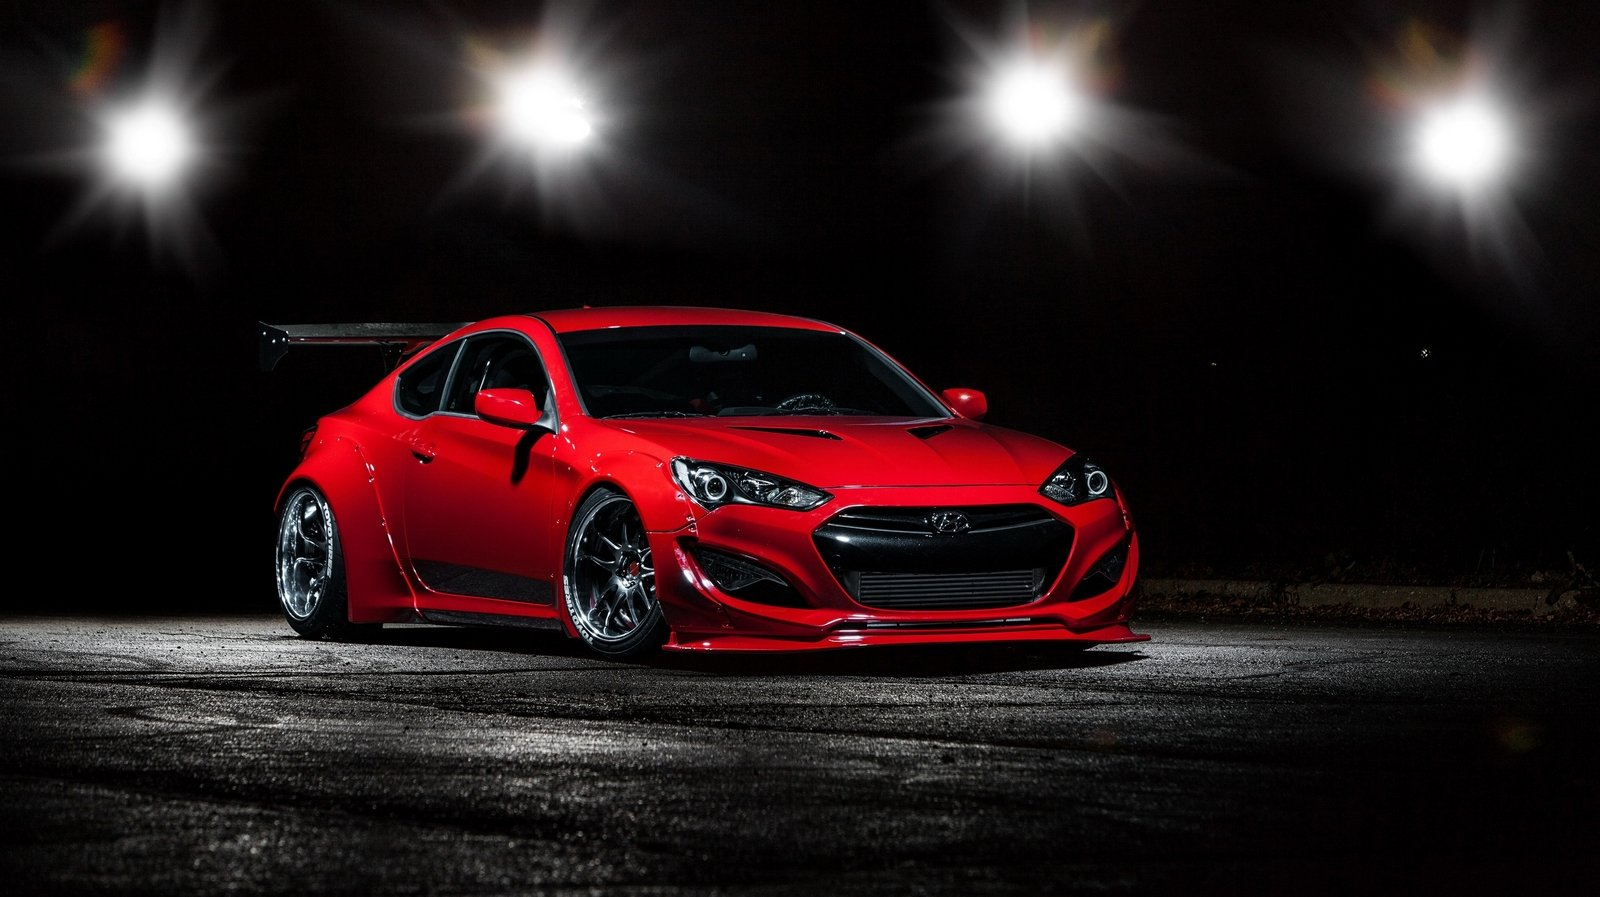 2015 hyundai genesis coupe by blood type racing top speed. Black Bedroom Furniture Sets. Home Design Ideas